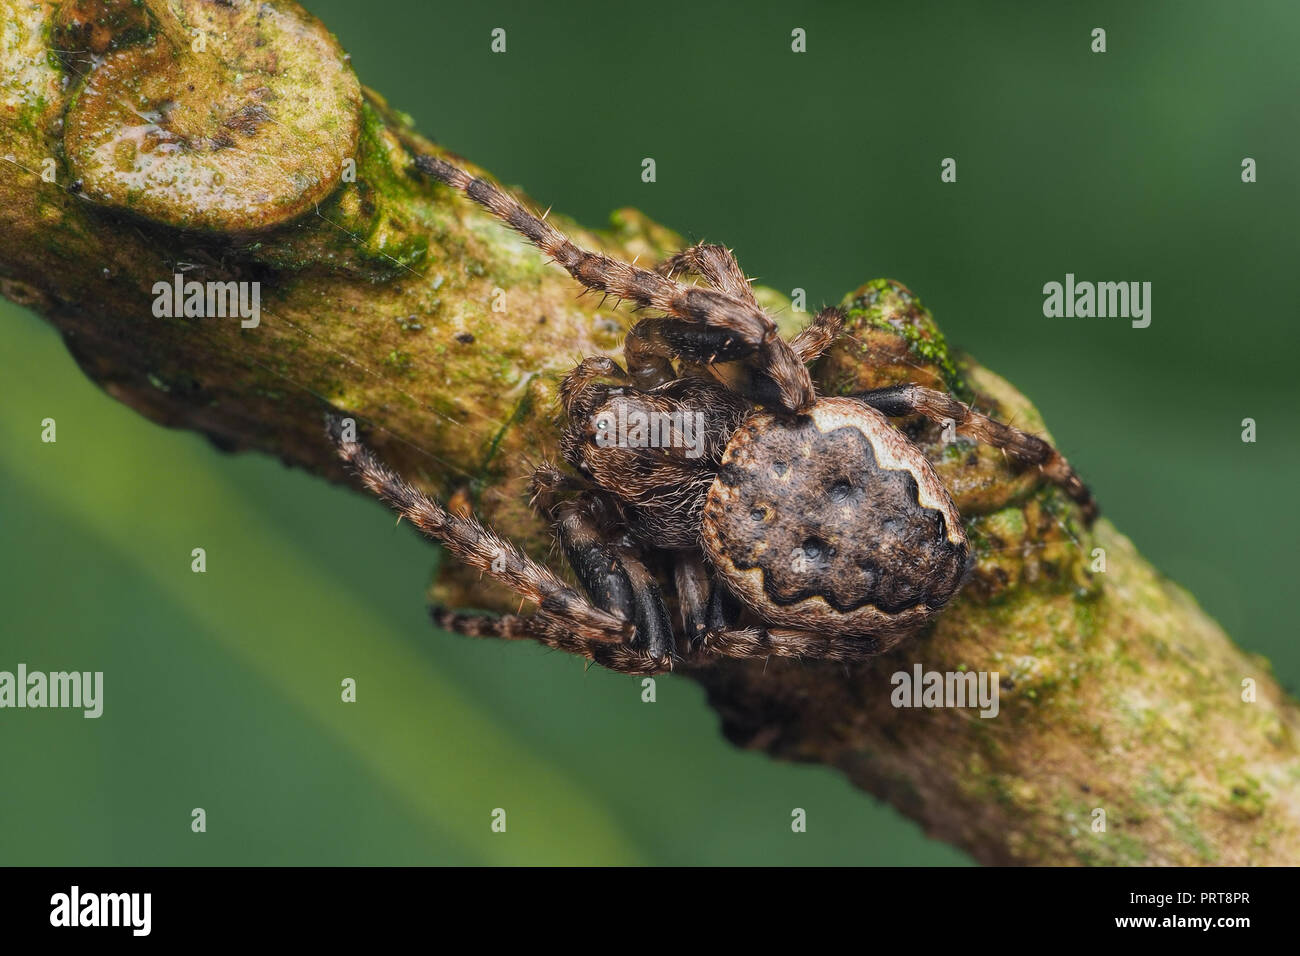 Walnut Orb-weaver spider on tree branch. Tipperary, Ireland - Stock Image